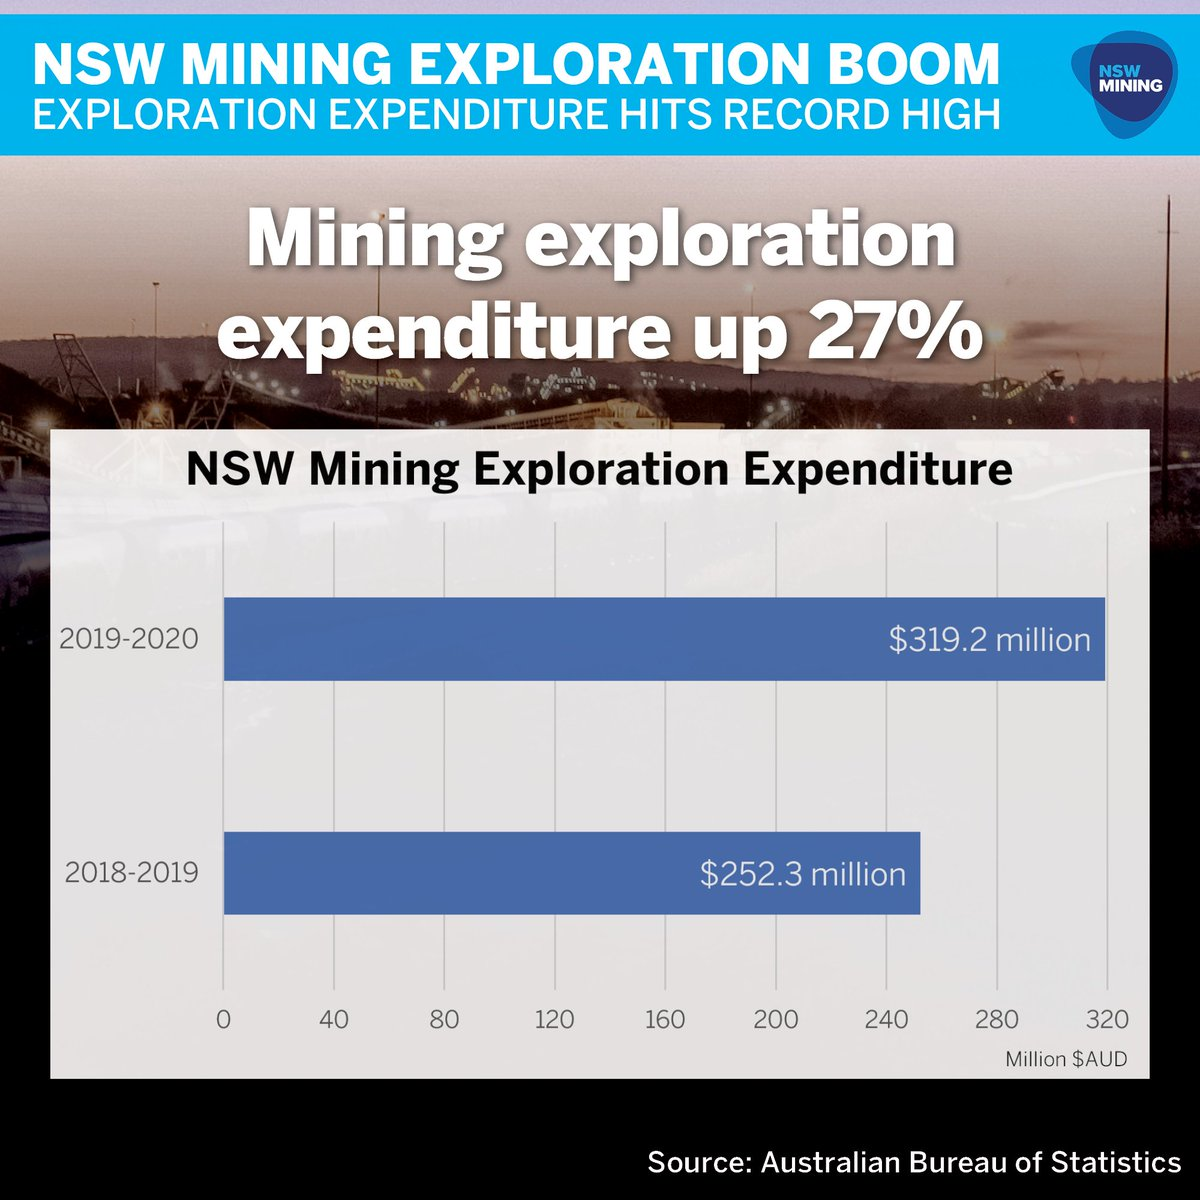 Great news for the future of mining in New South Wales. For the second year in a row, exploration expenditure in our state has hit a record high!  More exploration means:  ✅ More mining investment ✅ More potential jobs ✅ More potential revenue for hospitals, schools and roads https://t.co/6NHE14UqMl